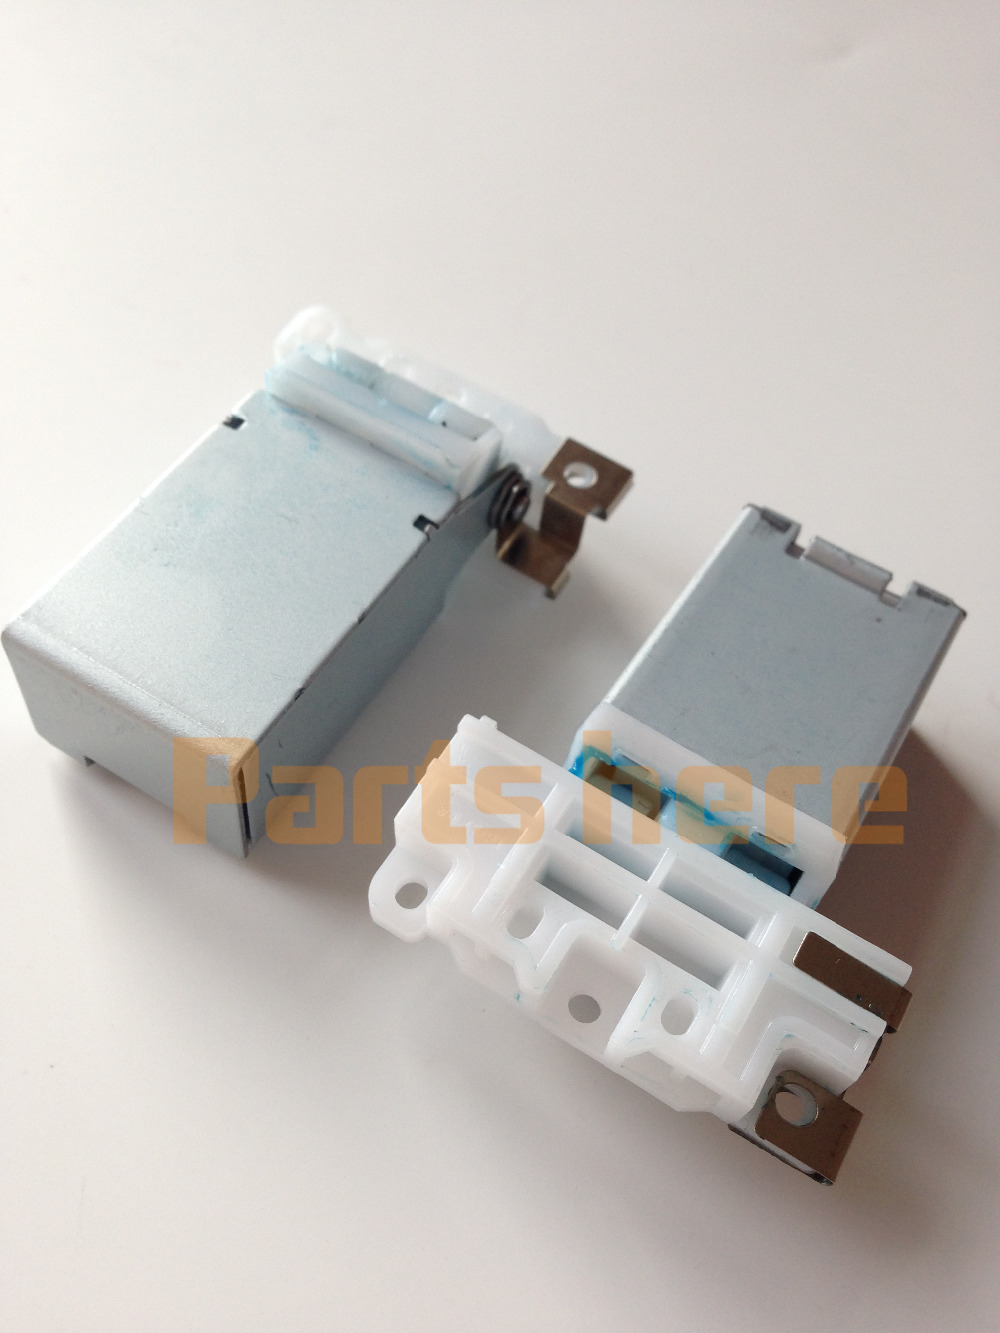 1X JC97-03038A MEA Unit Left ADF Hinge DADF for Samsung CLX6200 CLX6210 CLX6220 CLX6240 CLX6250 CLX6260 for <font><b>Xerox</b></font> 3325 <font><b>3550</b></font> 3635 image